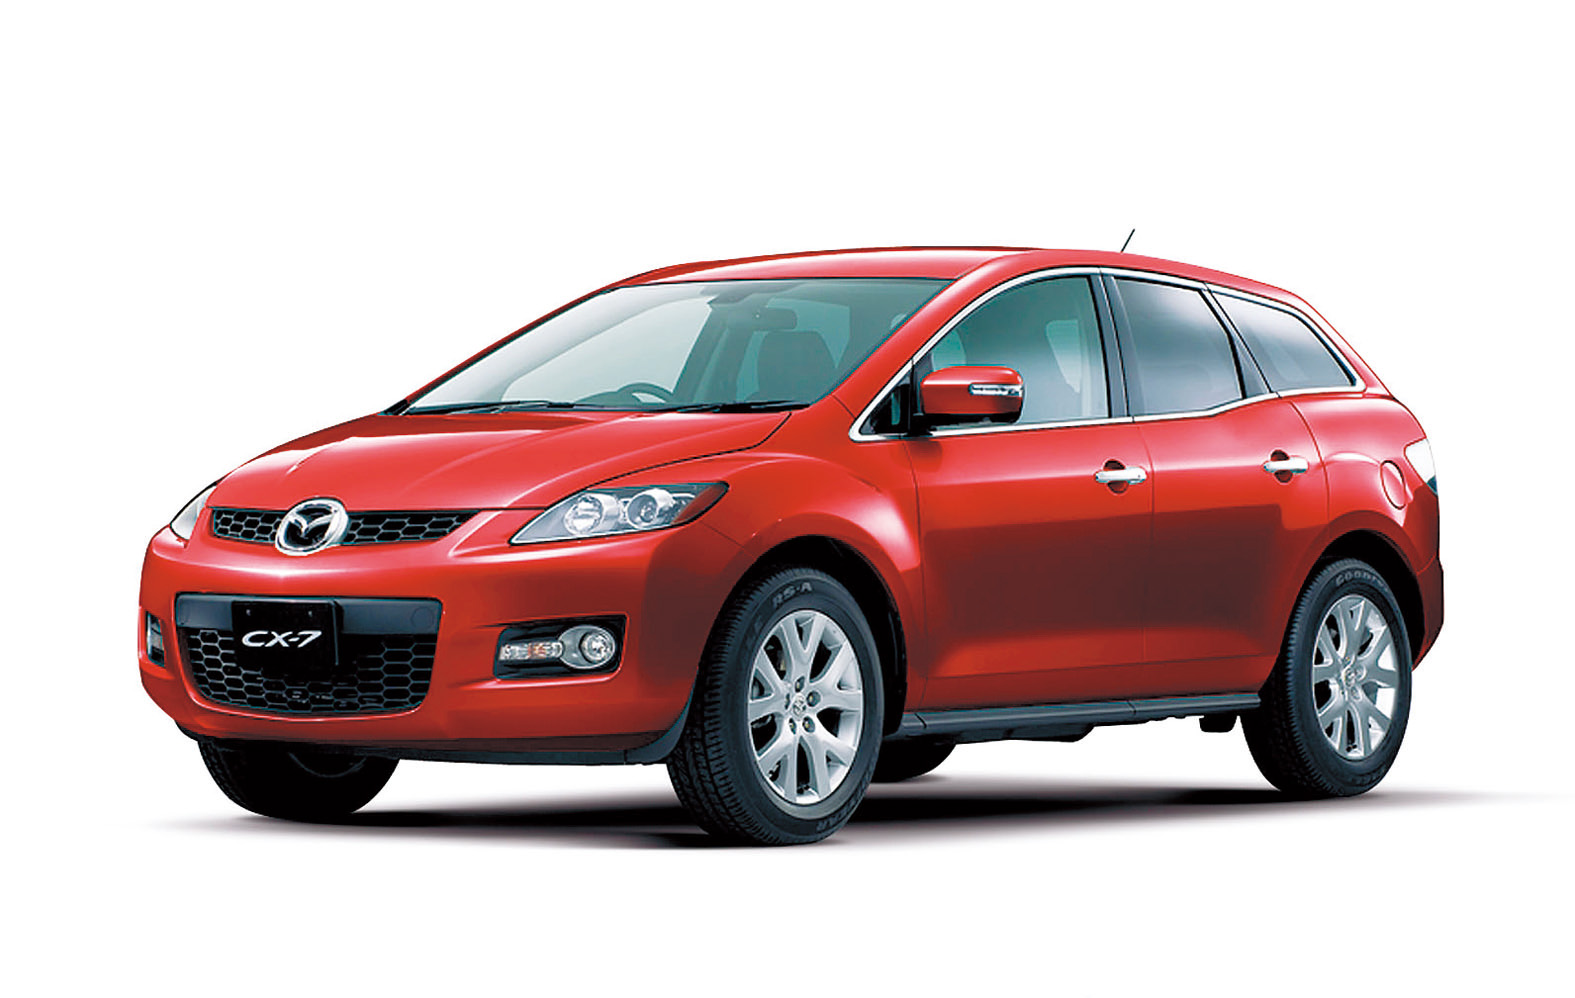 2007 mazda cx 7 cruising package top speed. Black Bedroom Furniture Sets. Home Design Ideas